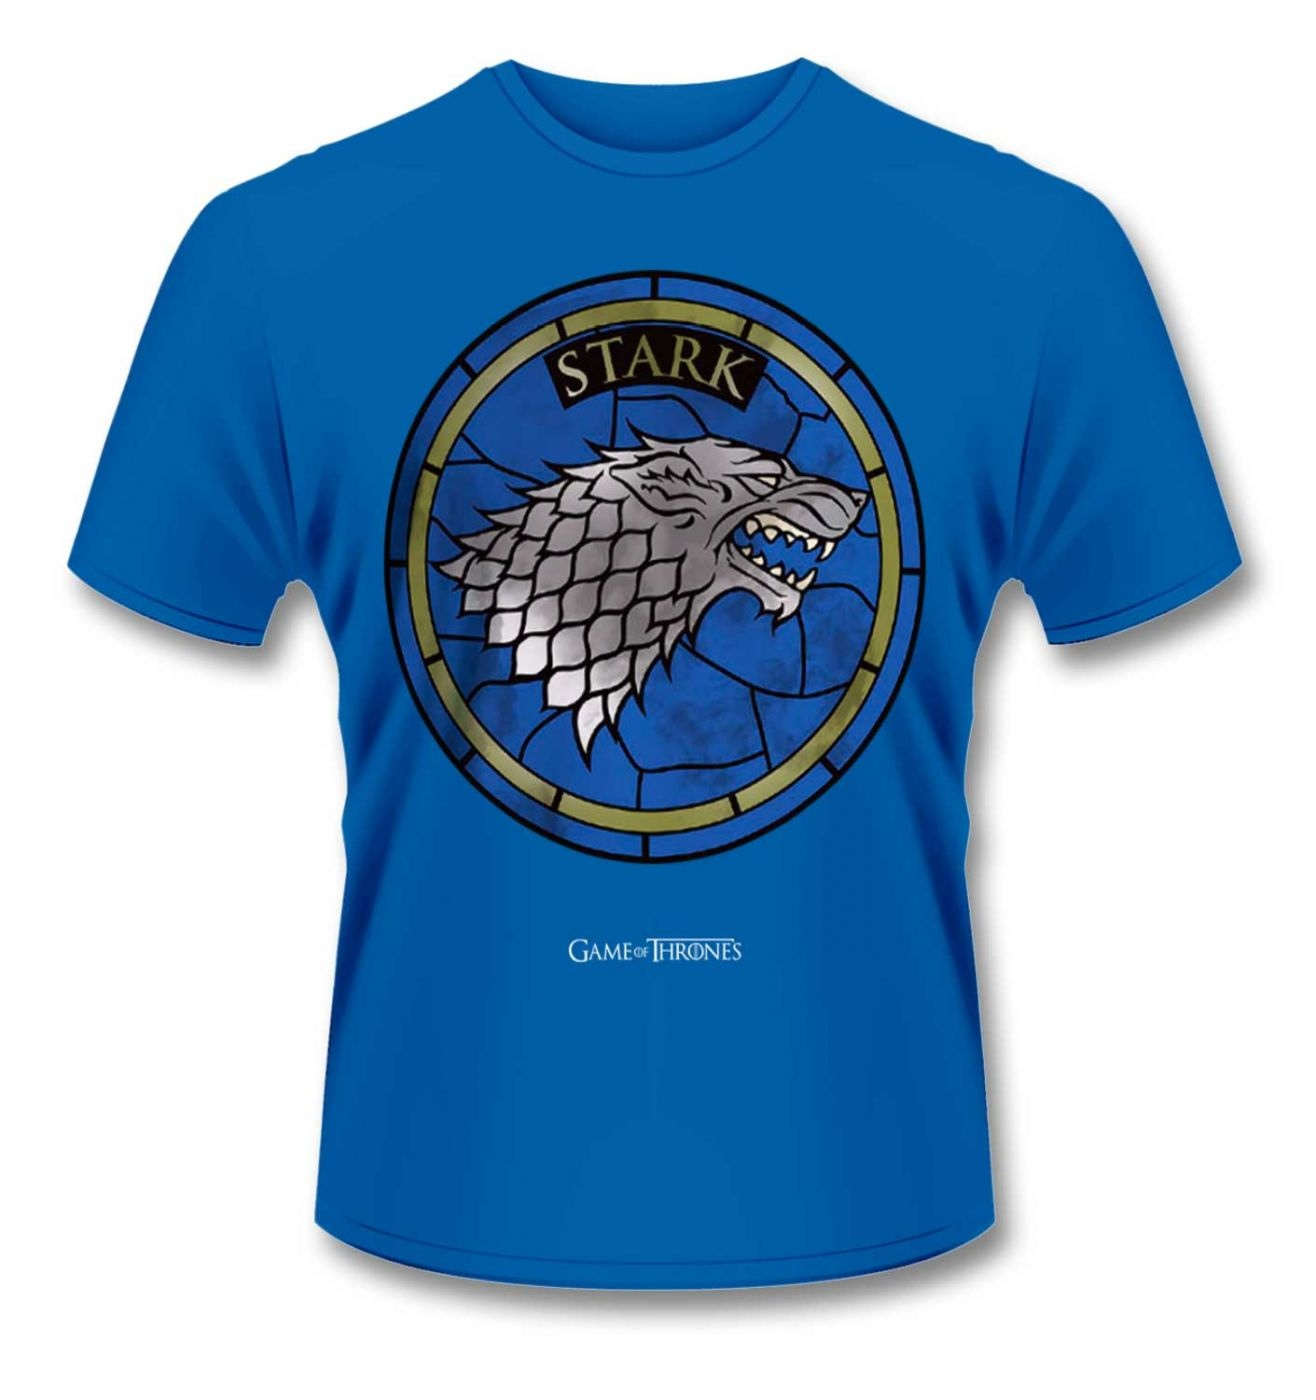 Official Game Of Thrones House Stark t-shirt